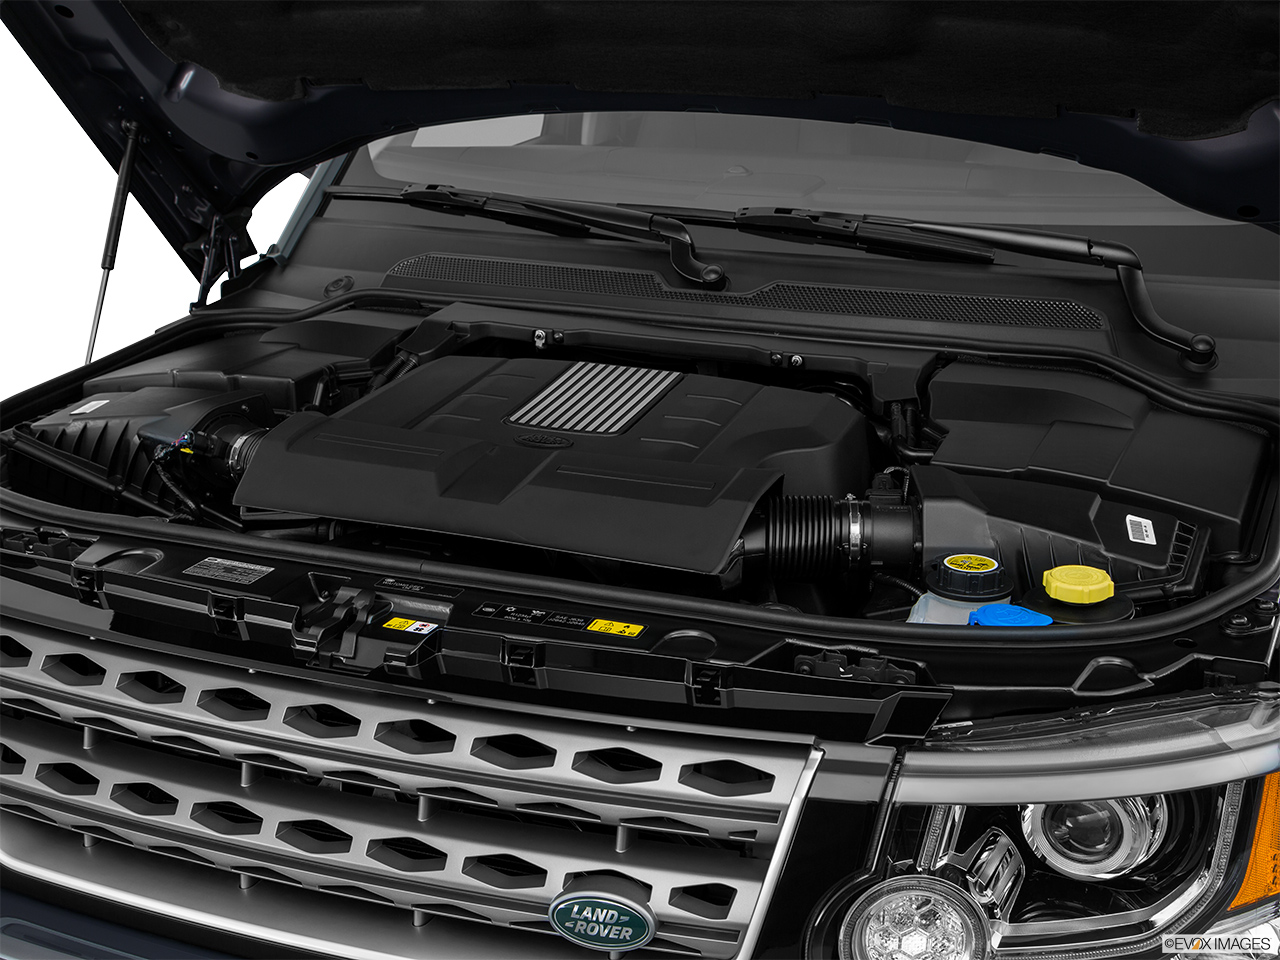 Land Rover Lr4 2016 Hse In Qatar New Car Prices Specs